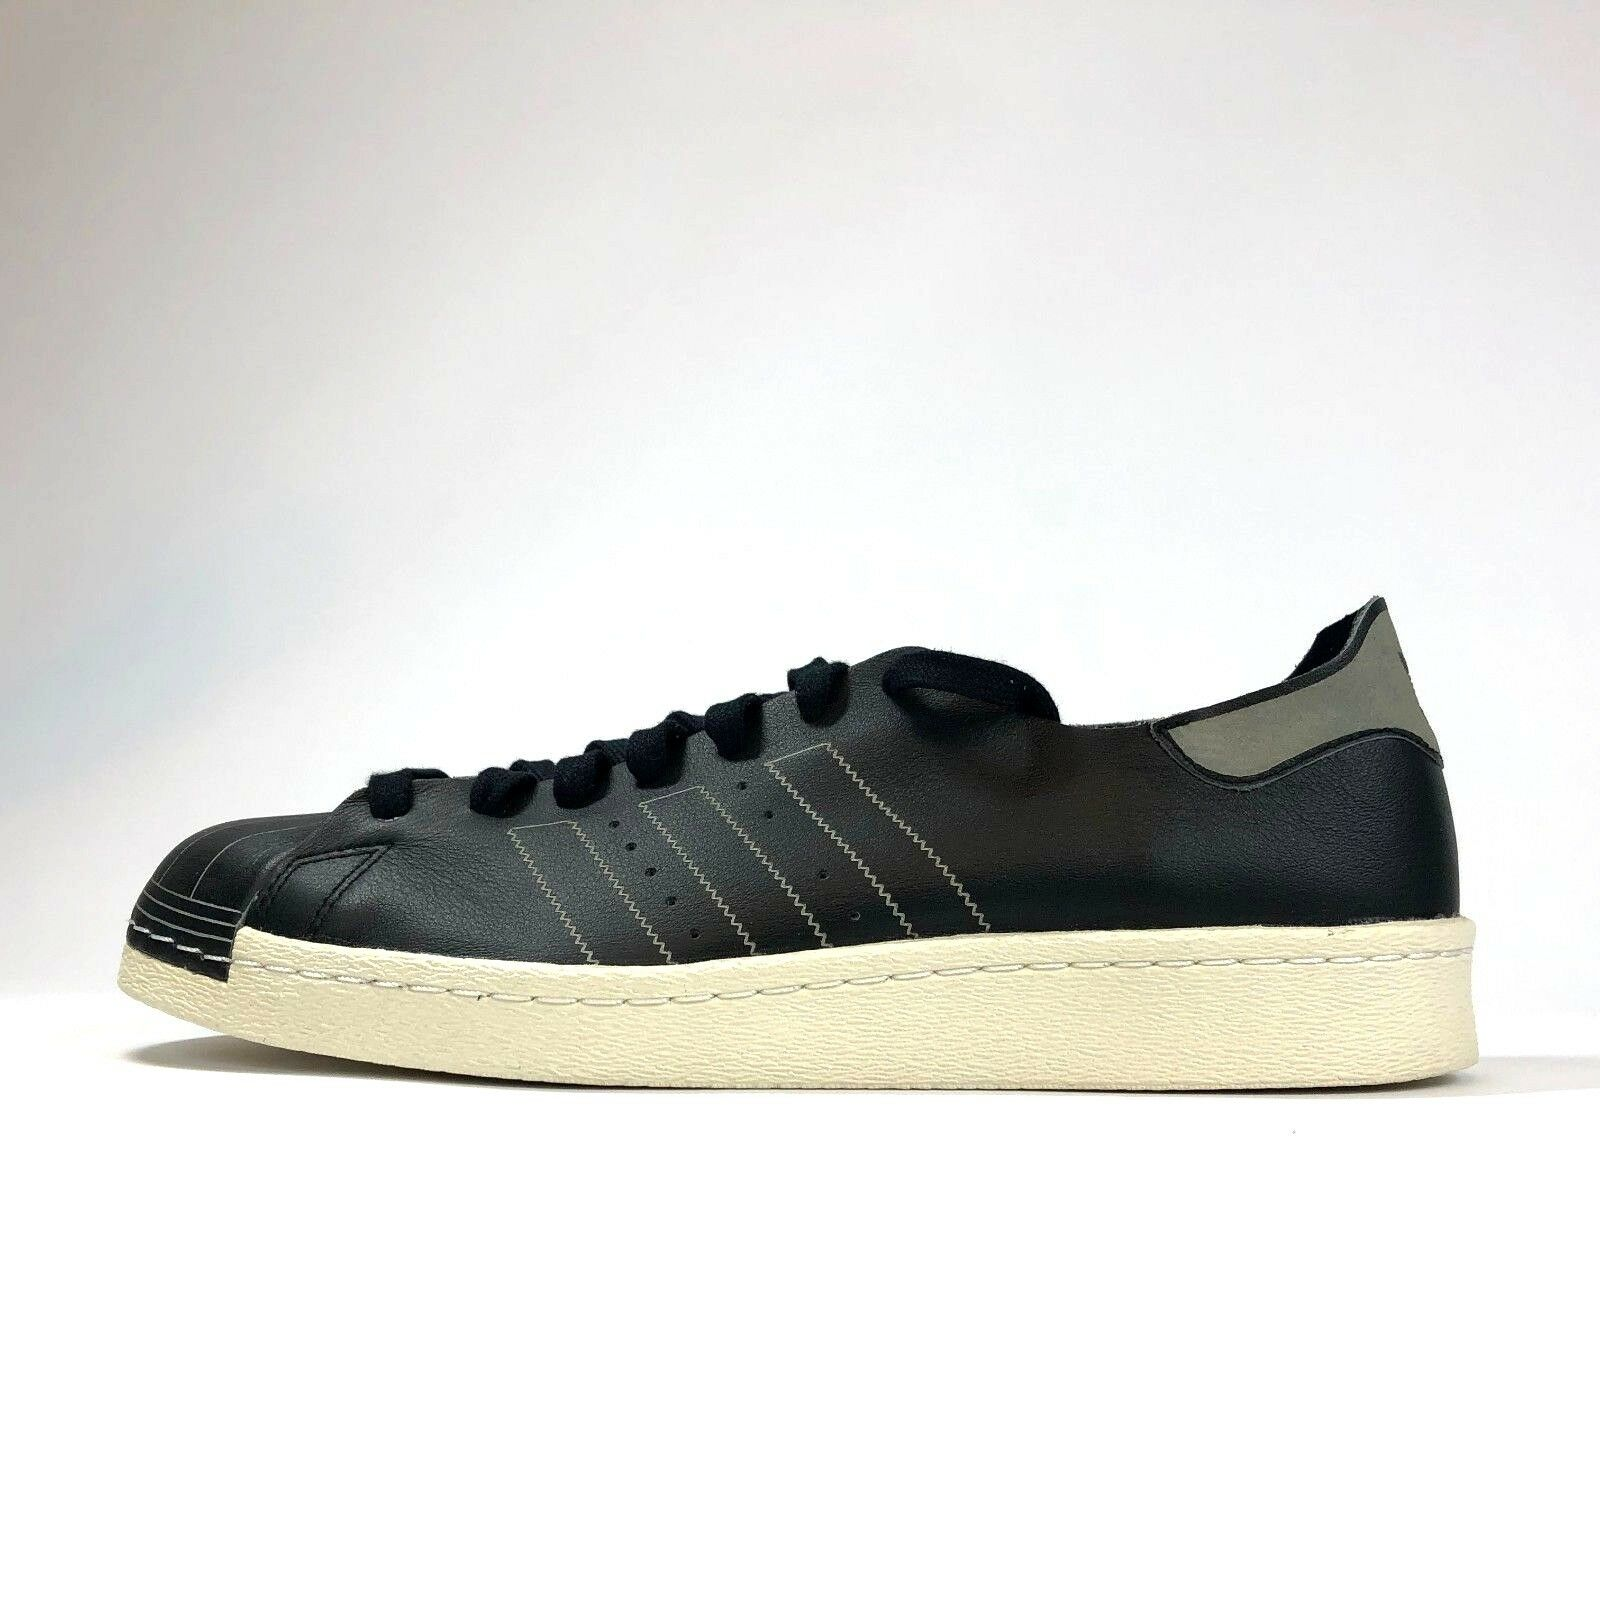 Adidas Superstar 80s Decon BZ0110 Core Black Leather Basketball shoes Mens 11